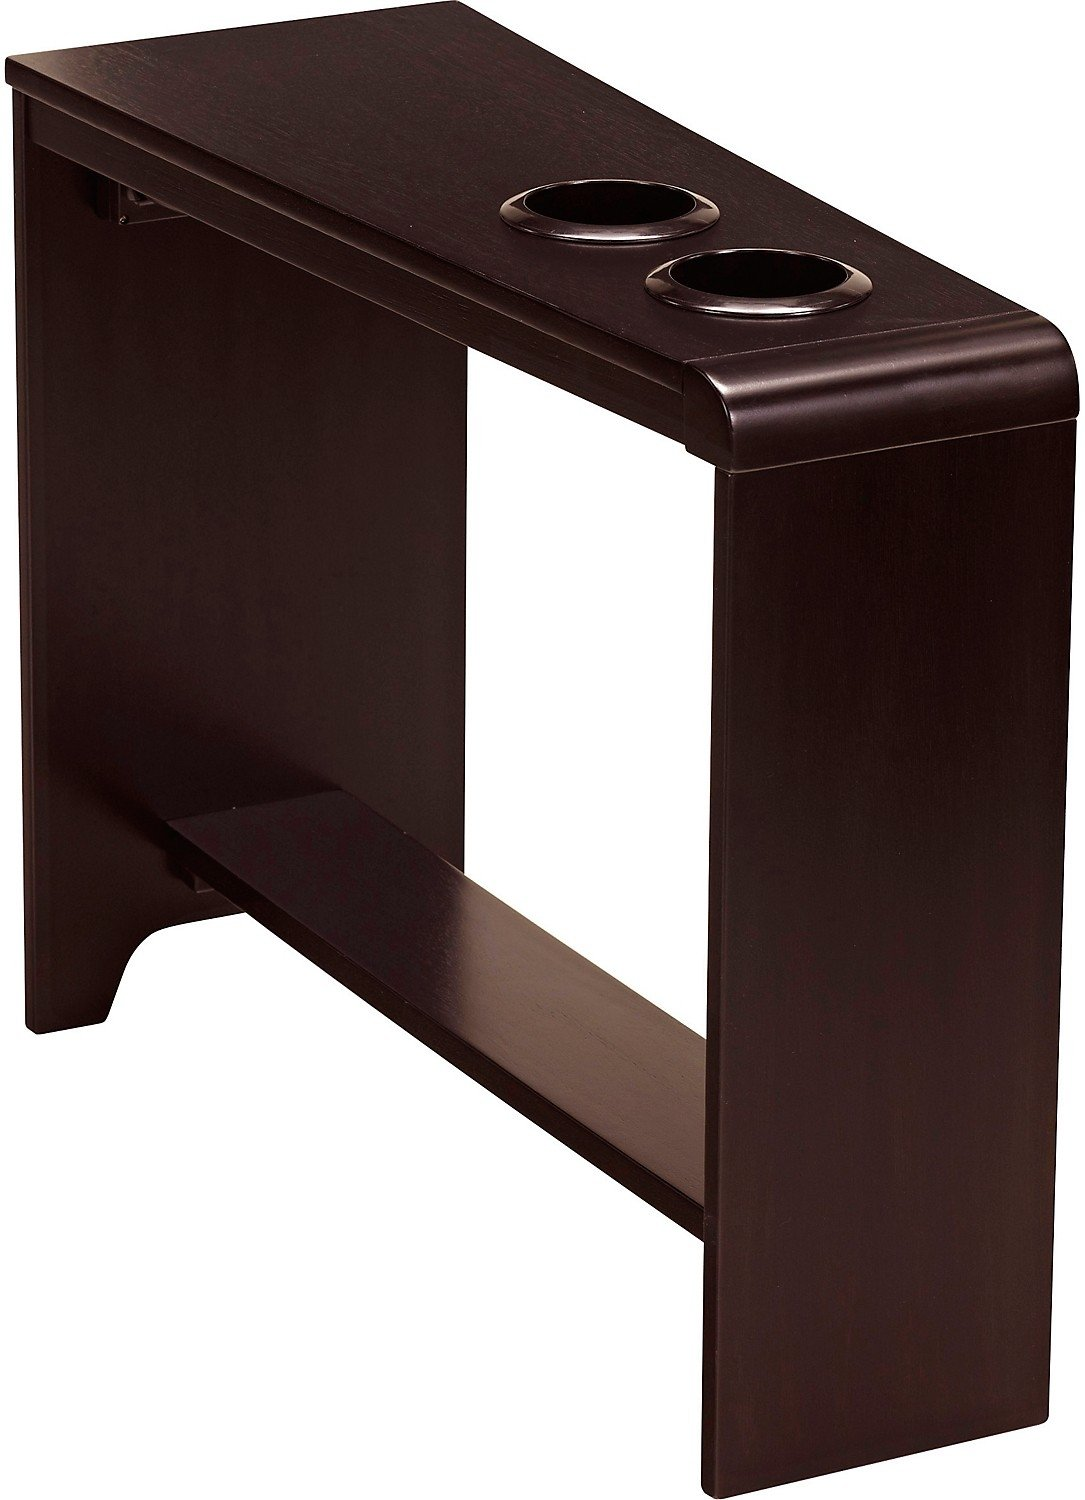 carlyle accent table the brick wedge end espresso finish tap expand small space nightstand modern dog beds furniture glass nesting tables set decorating over couch ashley chaise